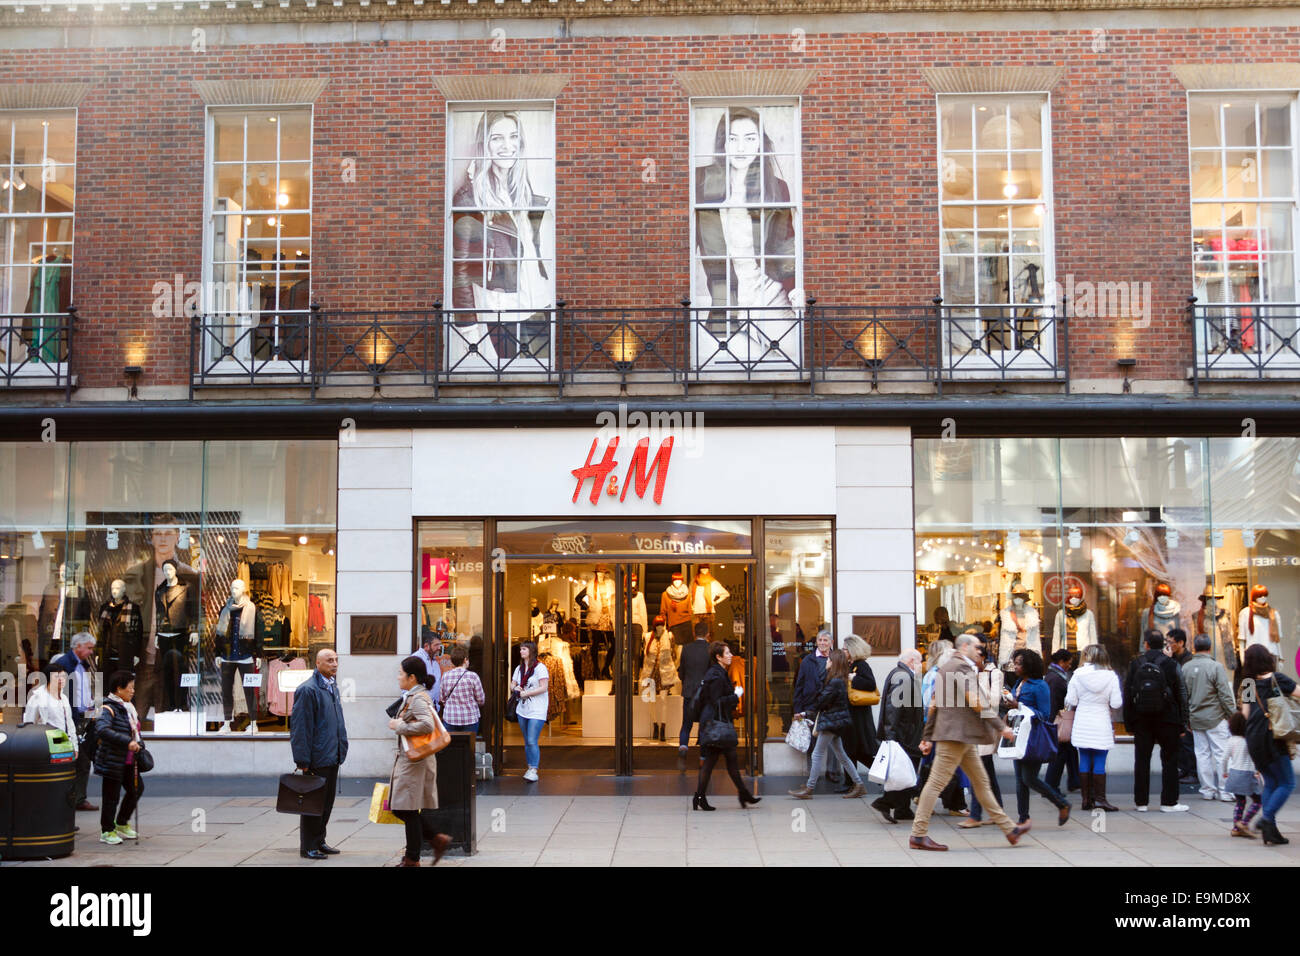 Crowds of shoppers walk past  the H&M shop/store Oxford Street, London, England, UK - Stock Image